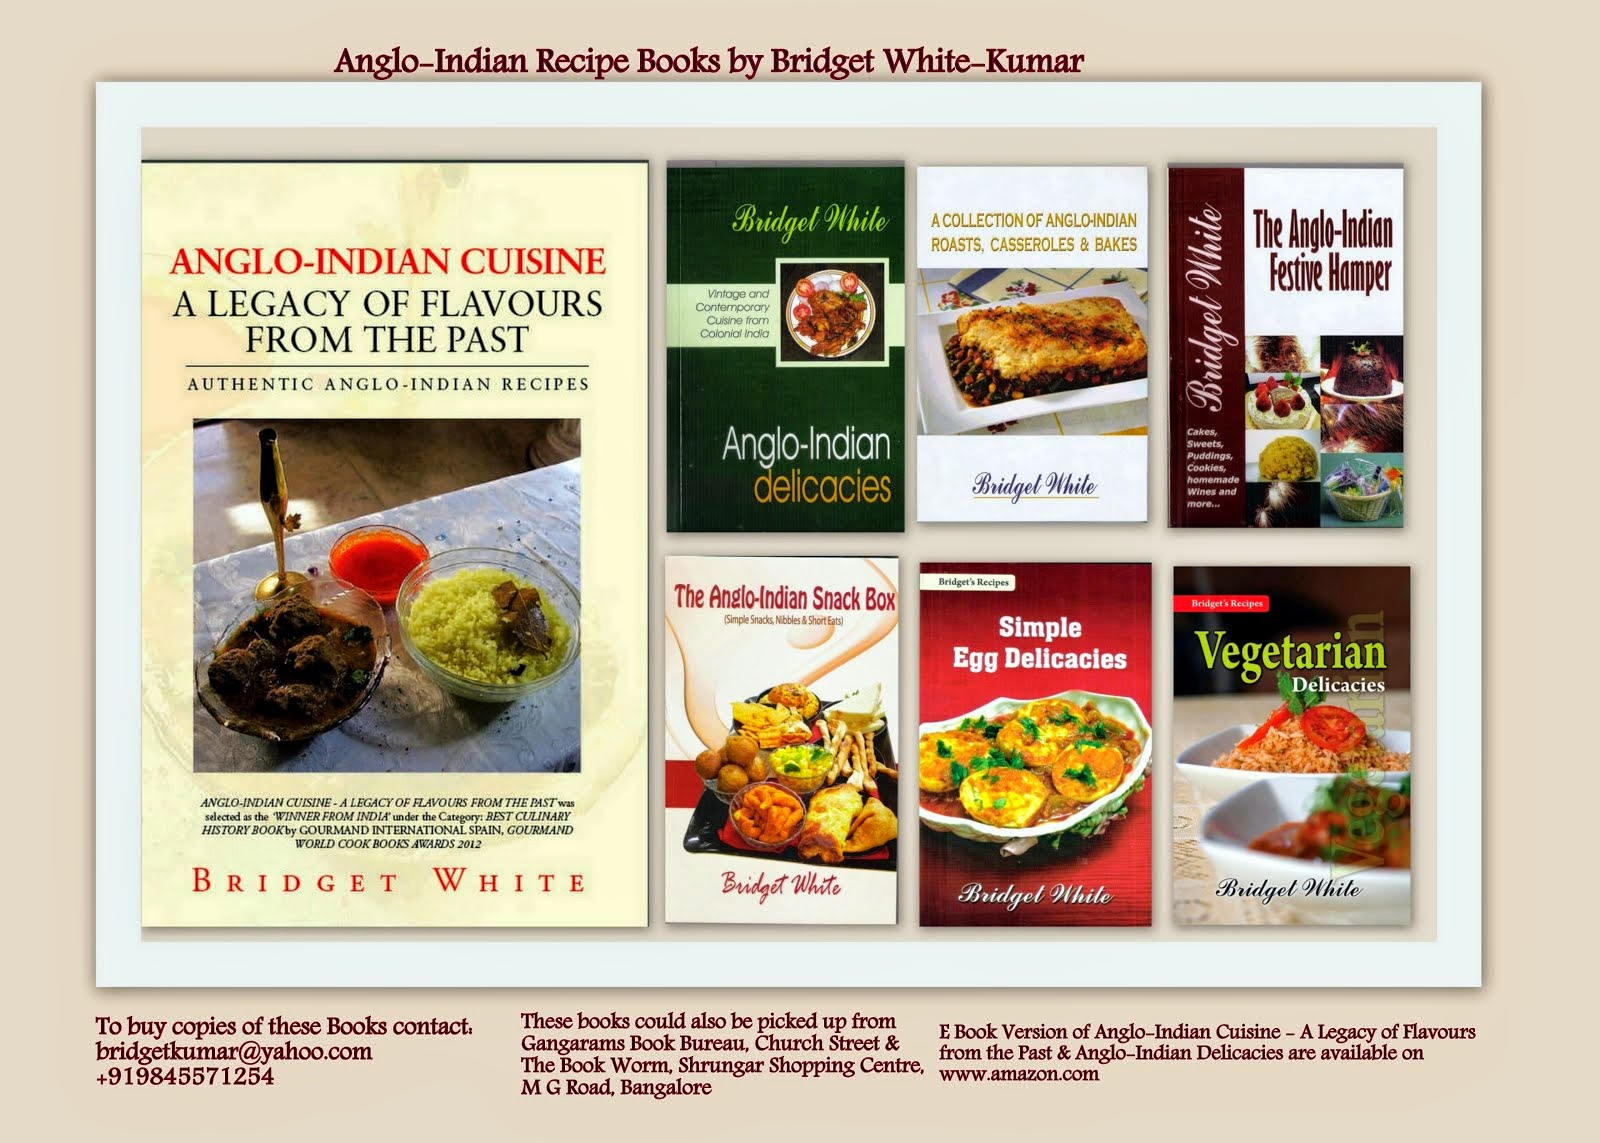 MY ANGLO-INDIAN RECIPE BOOKS